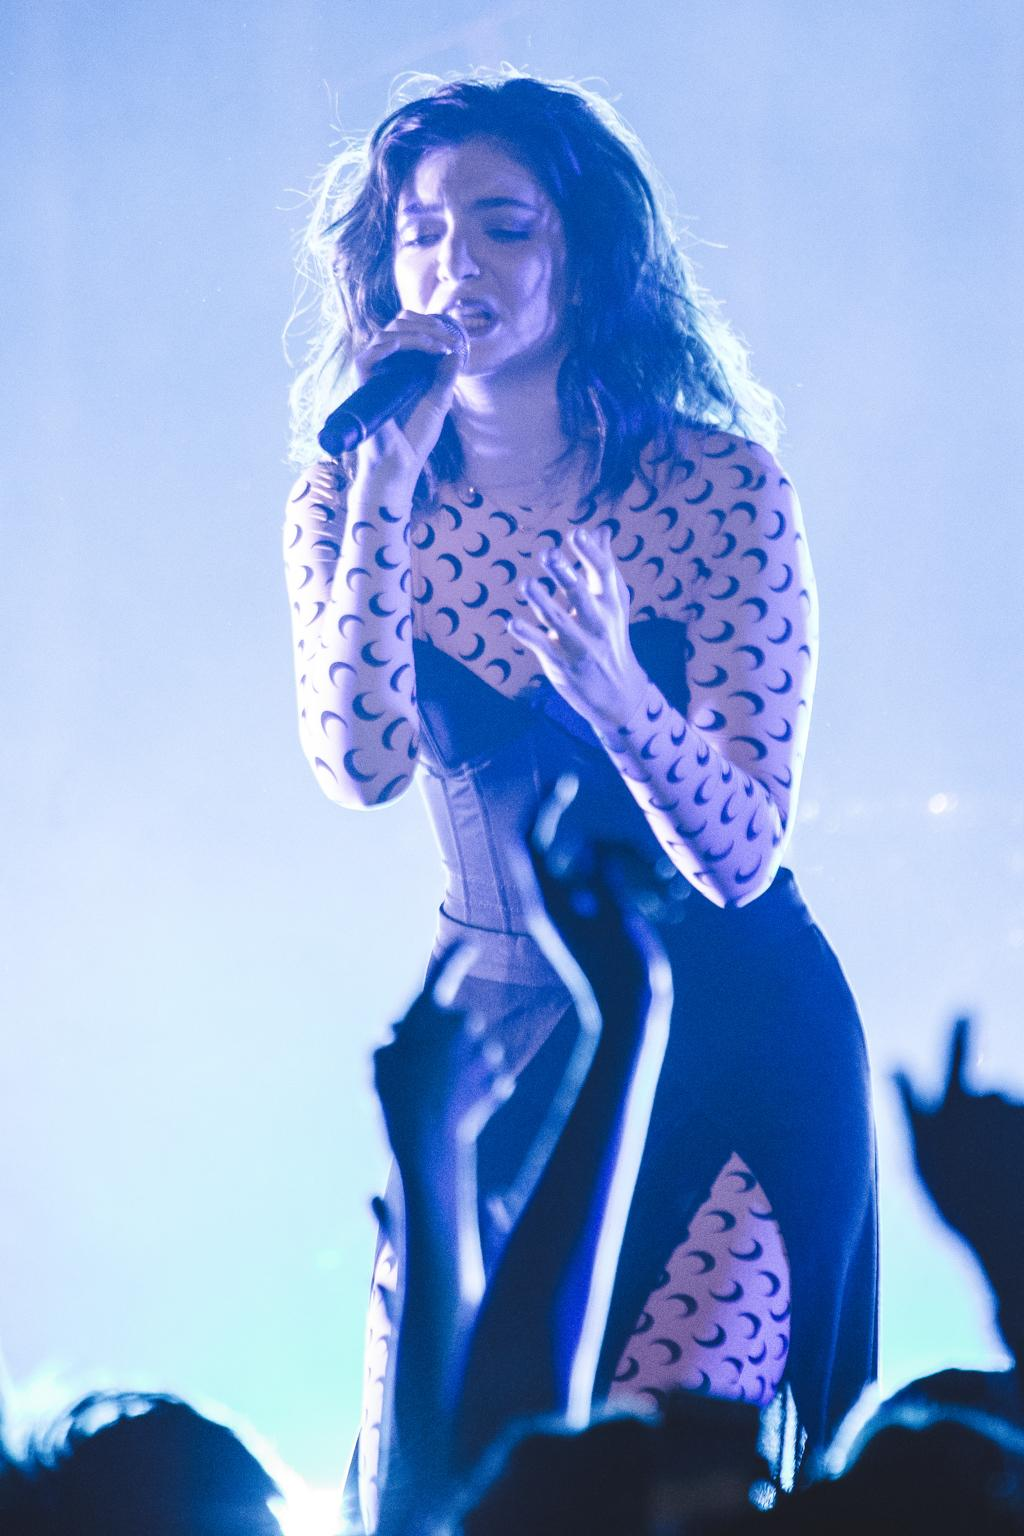 Lorde performs at the Manchester Apollo on the opening night of her 2017 18 world tour